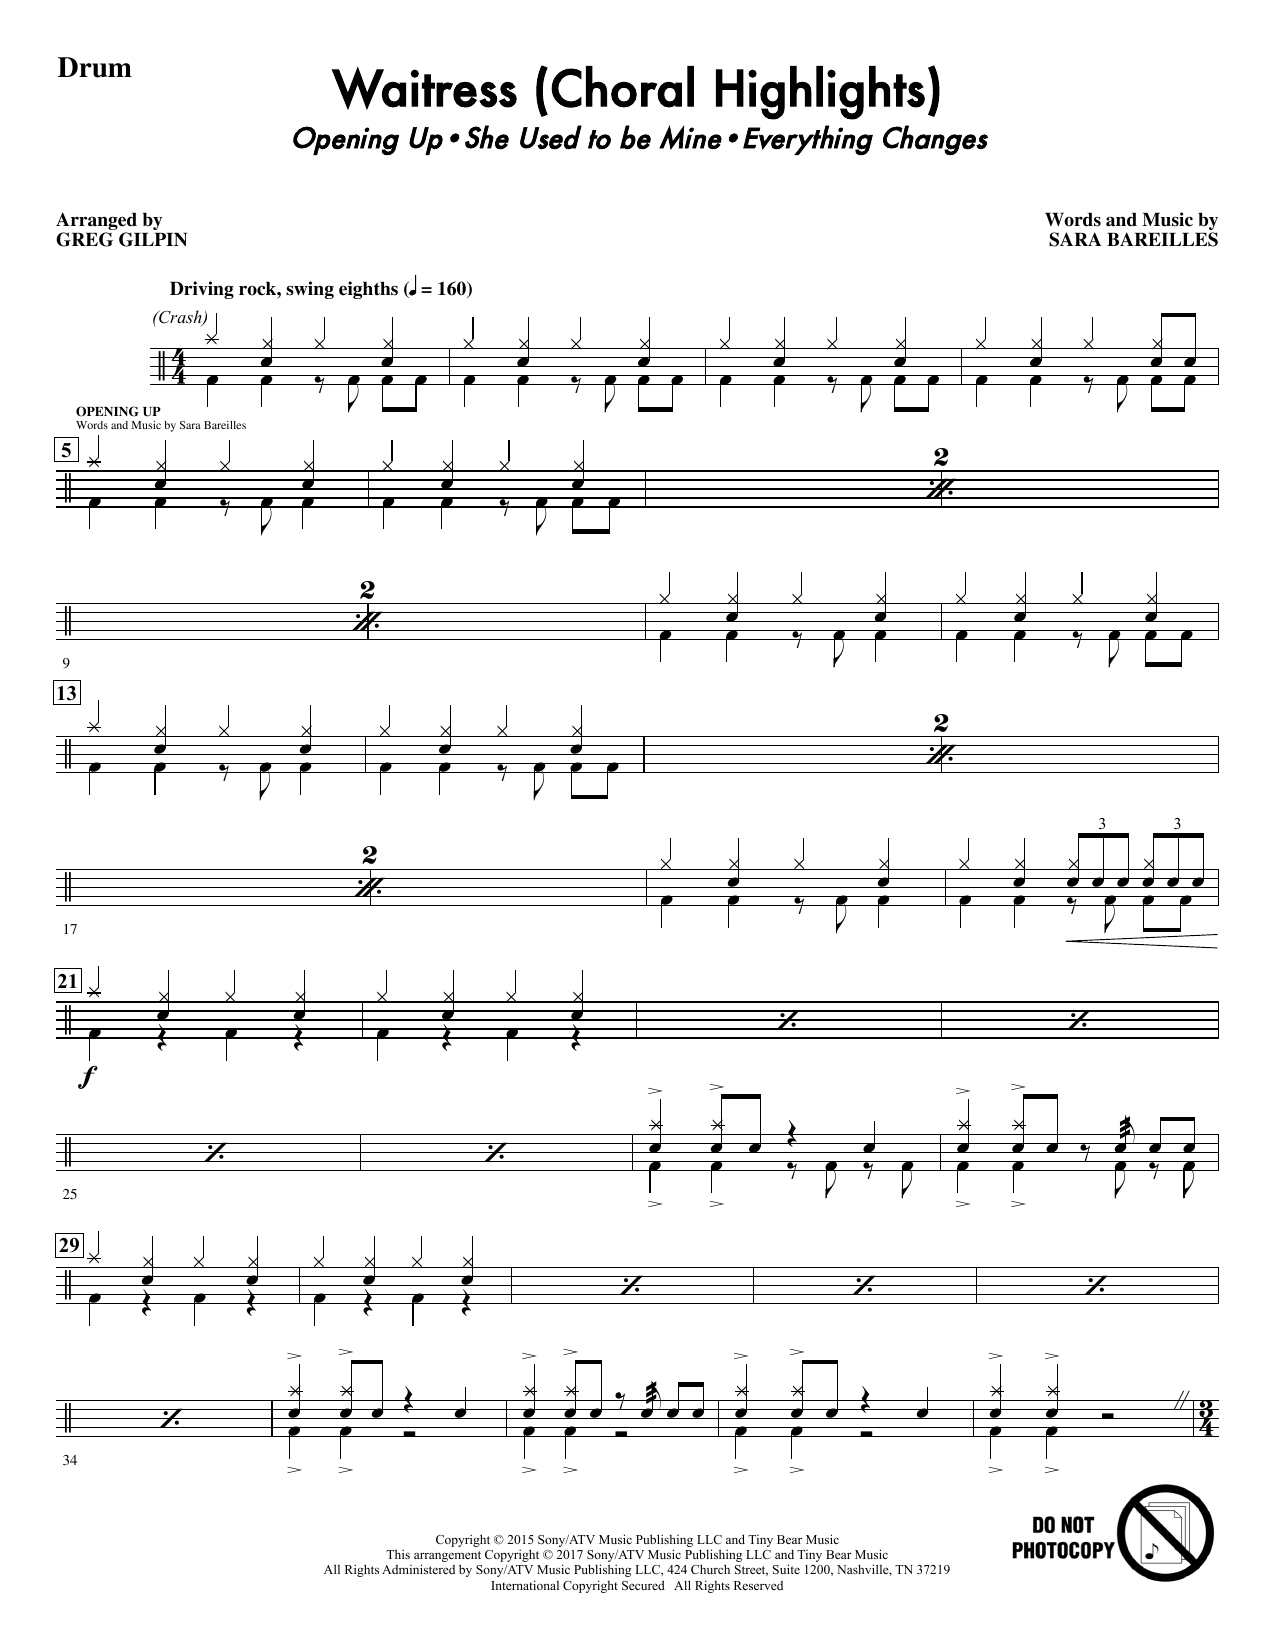 Waitress (Choral Highlights) - Drums Sheet Music